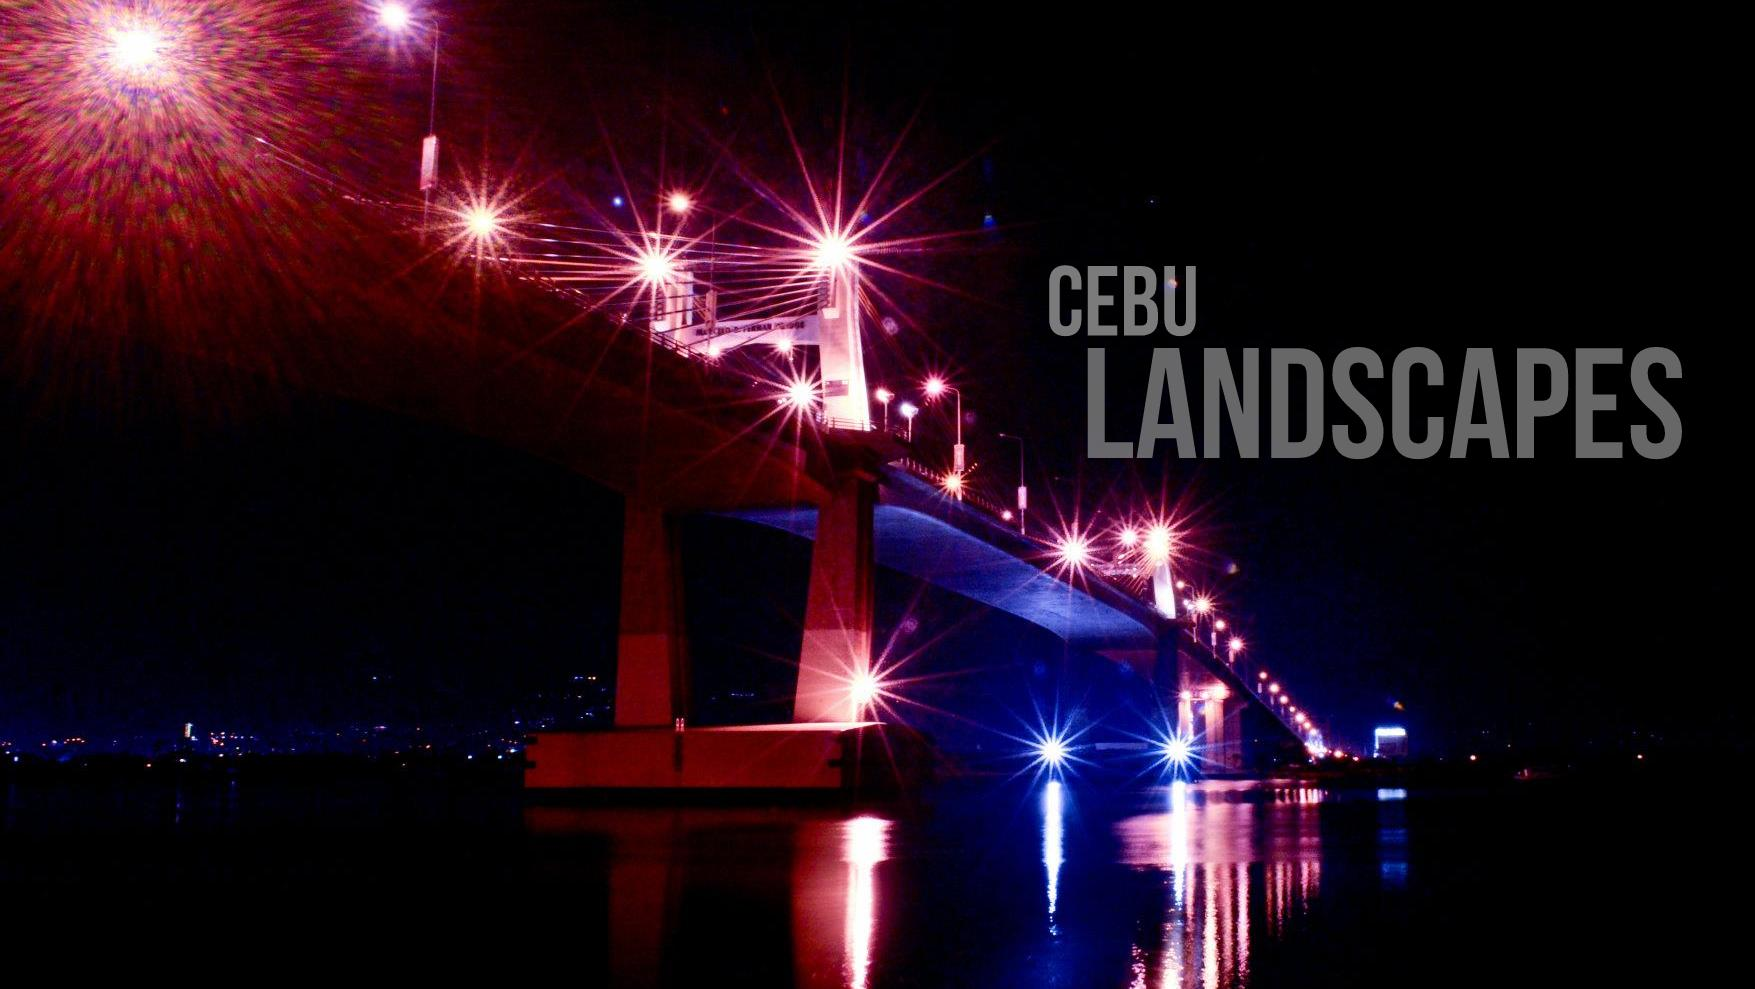 Top Places in Cebu for Landscape Photography